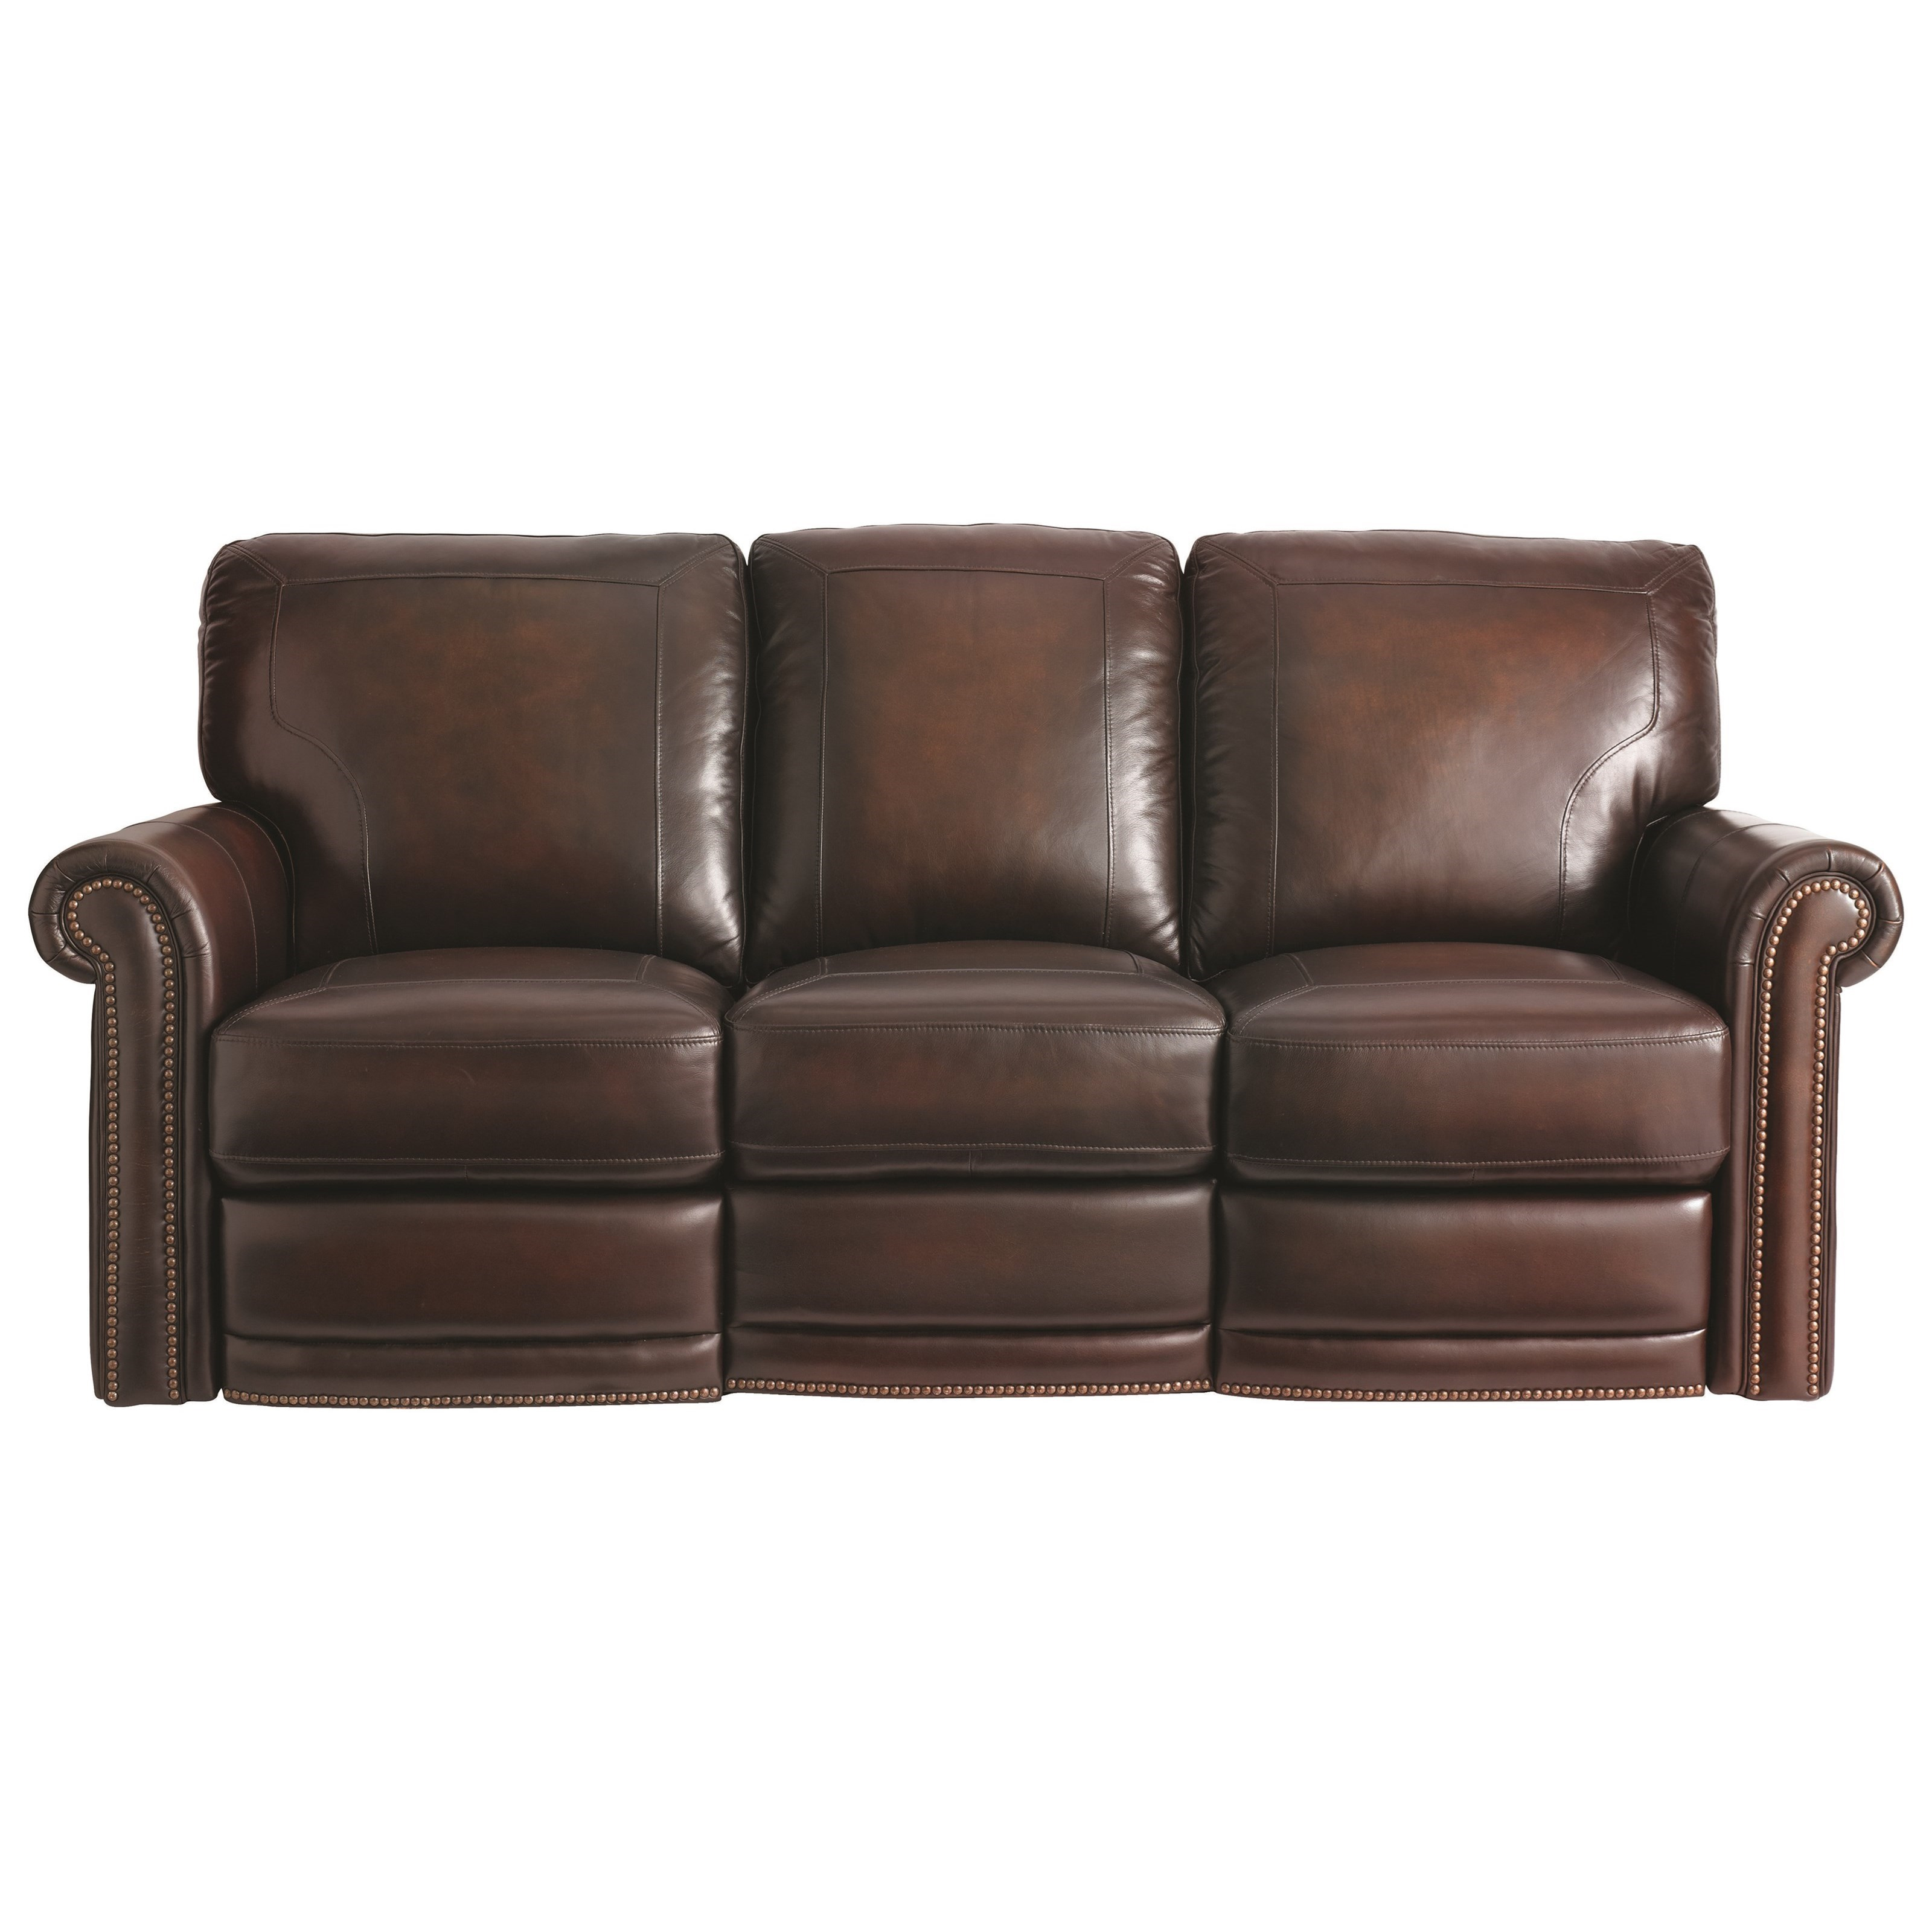 lane home furnishings leather sofa and loveseat from the bowden collection paprika colored traditional reclining jasmine manual